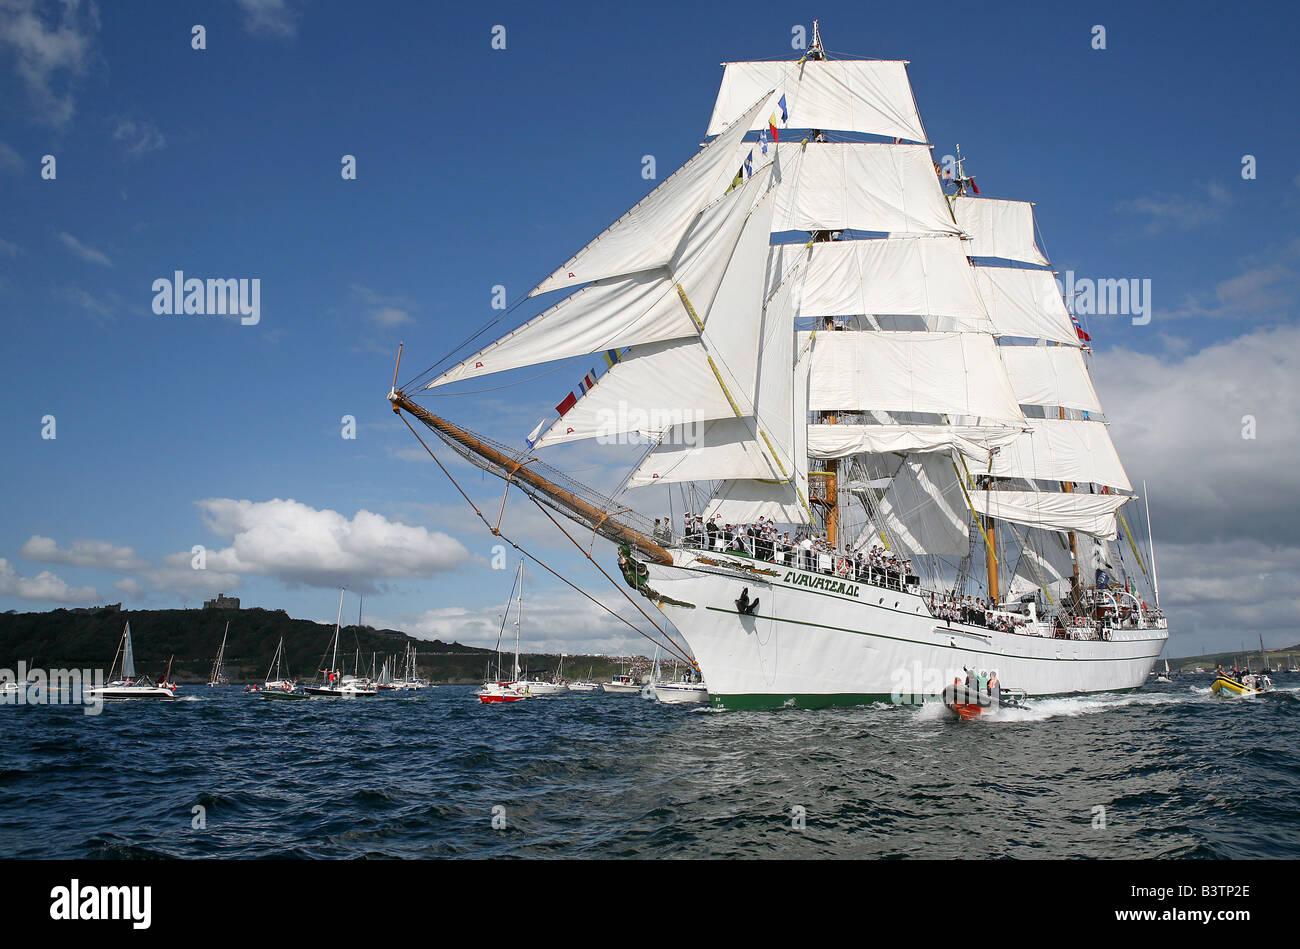 Start of the Tall Ships Race 2008 off Pendennis Point, Falmouth Cornwall, UK - Stock Image